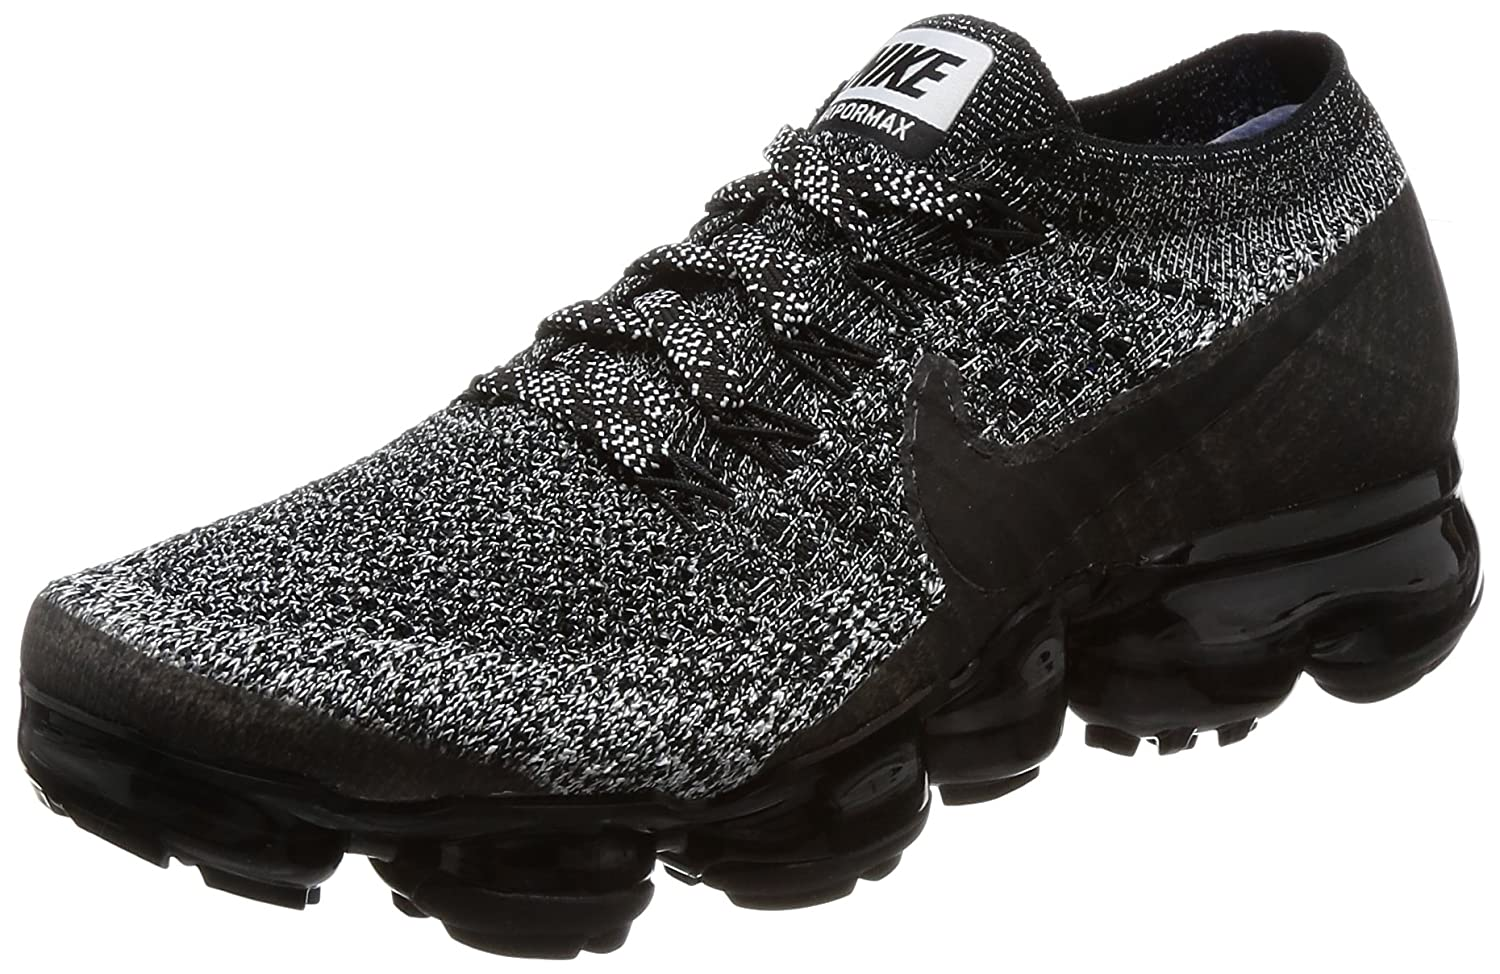 quality design 07555 c6dee Nike Womens Air Vapormax Flyknit Running Trainers 849557 Sneakers Shoes